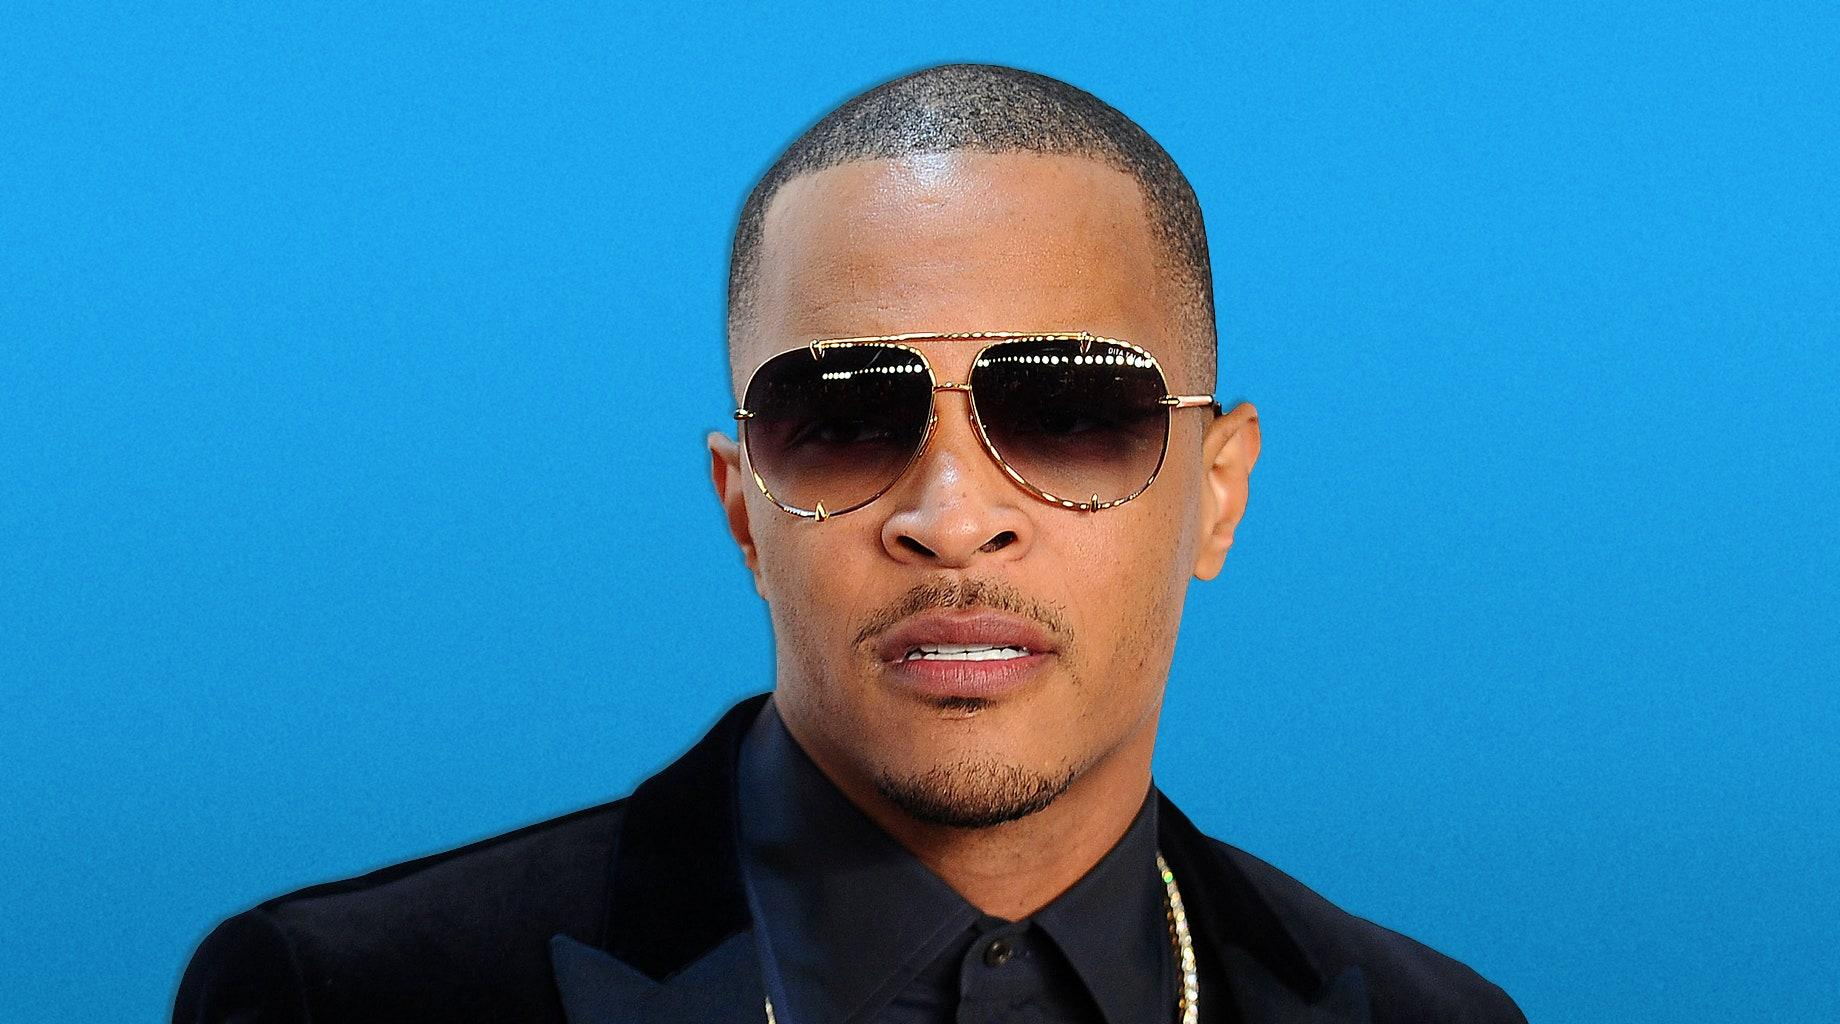 T.I. Talks To Fans After Being Arrested In Amsterdam For Crash With Police Car - See His Video